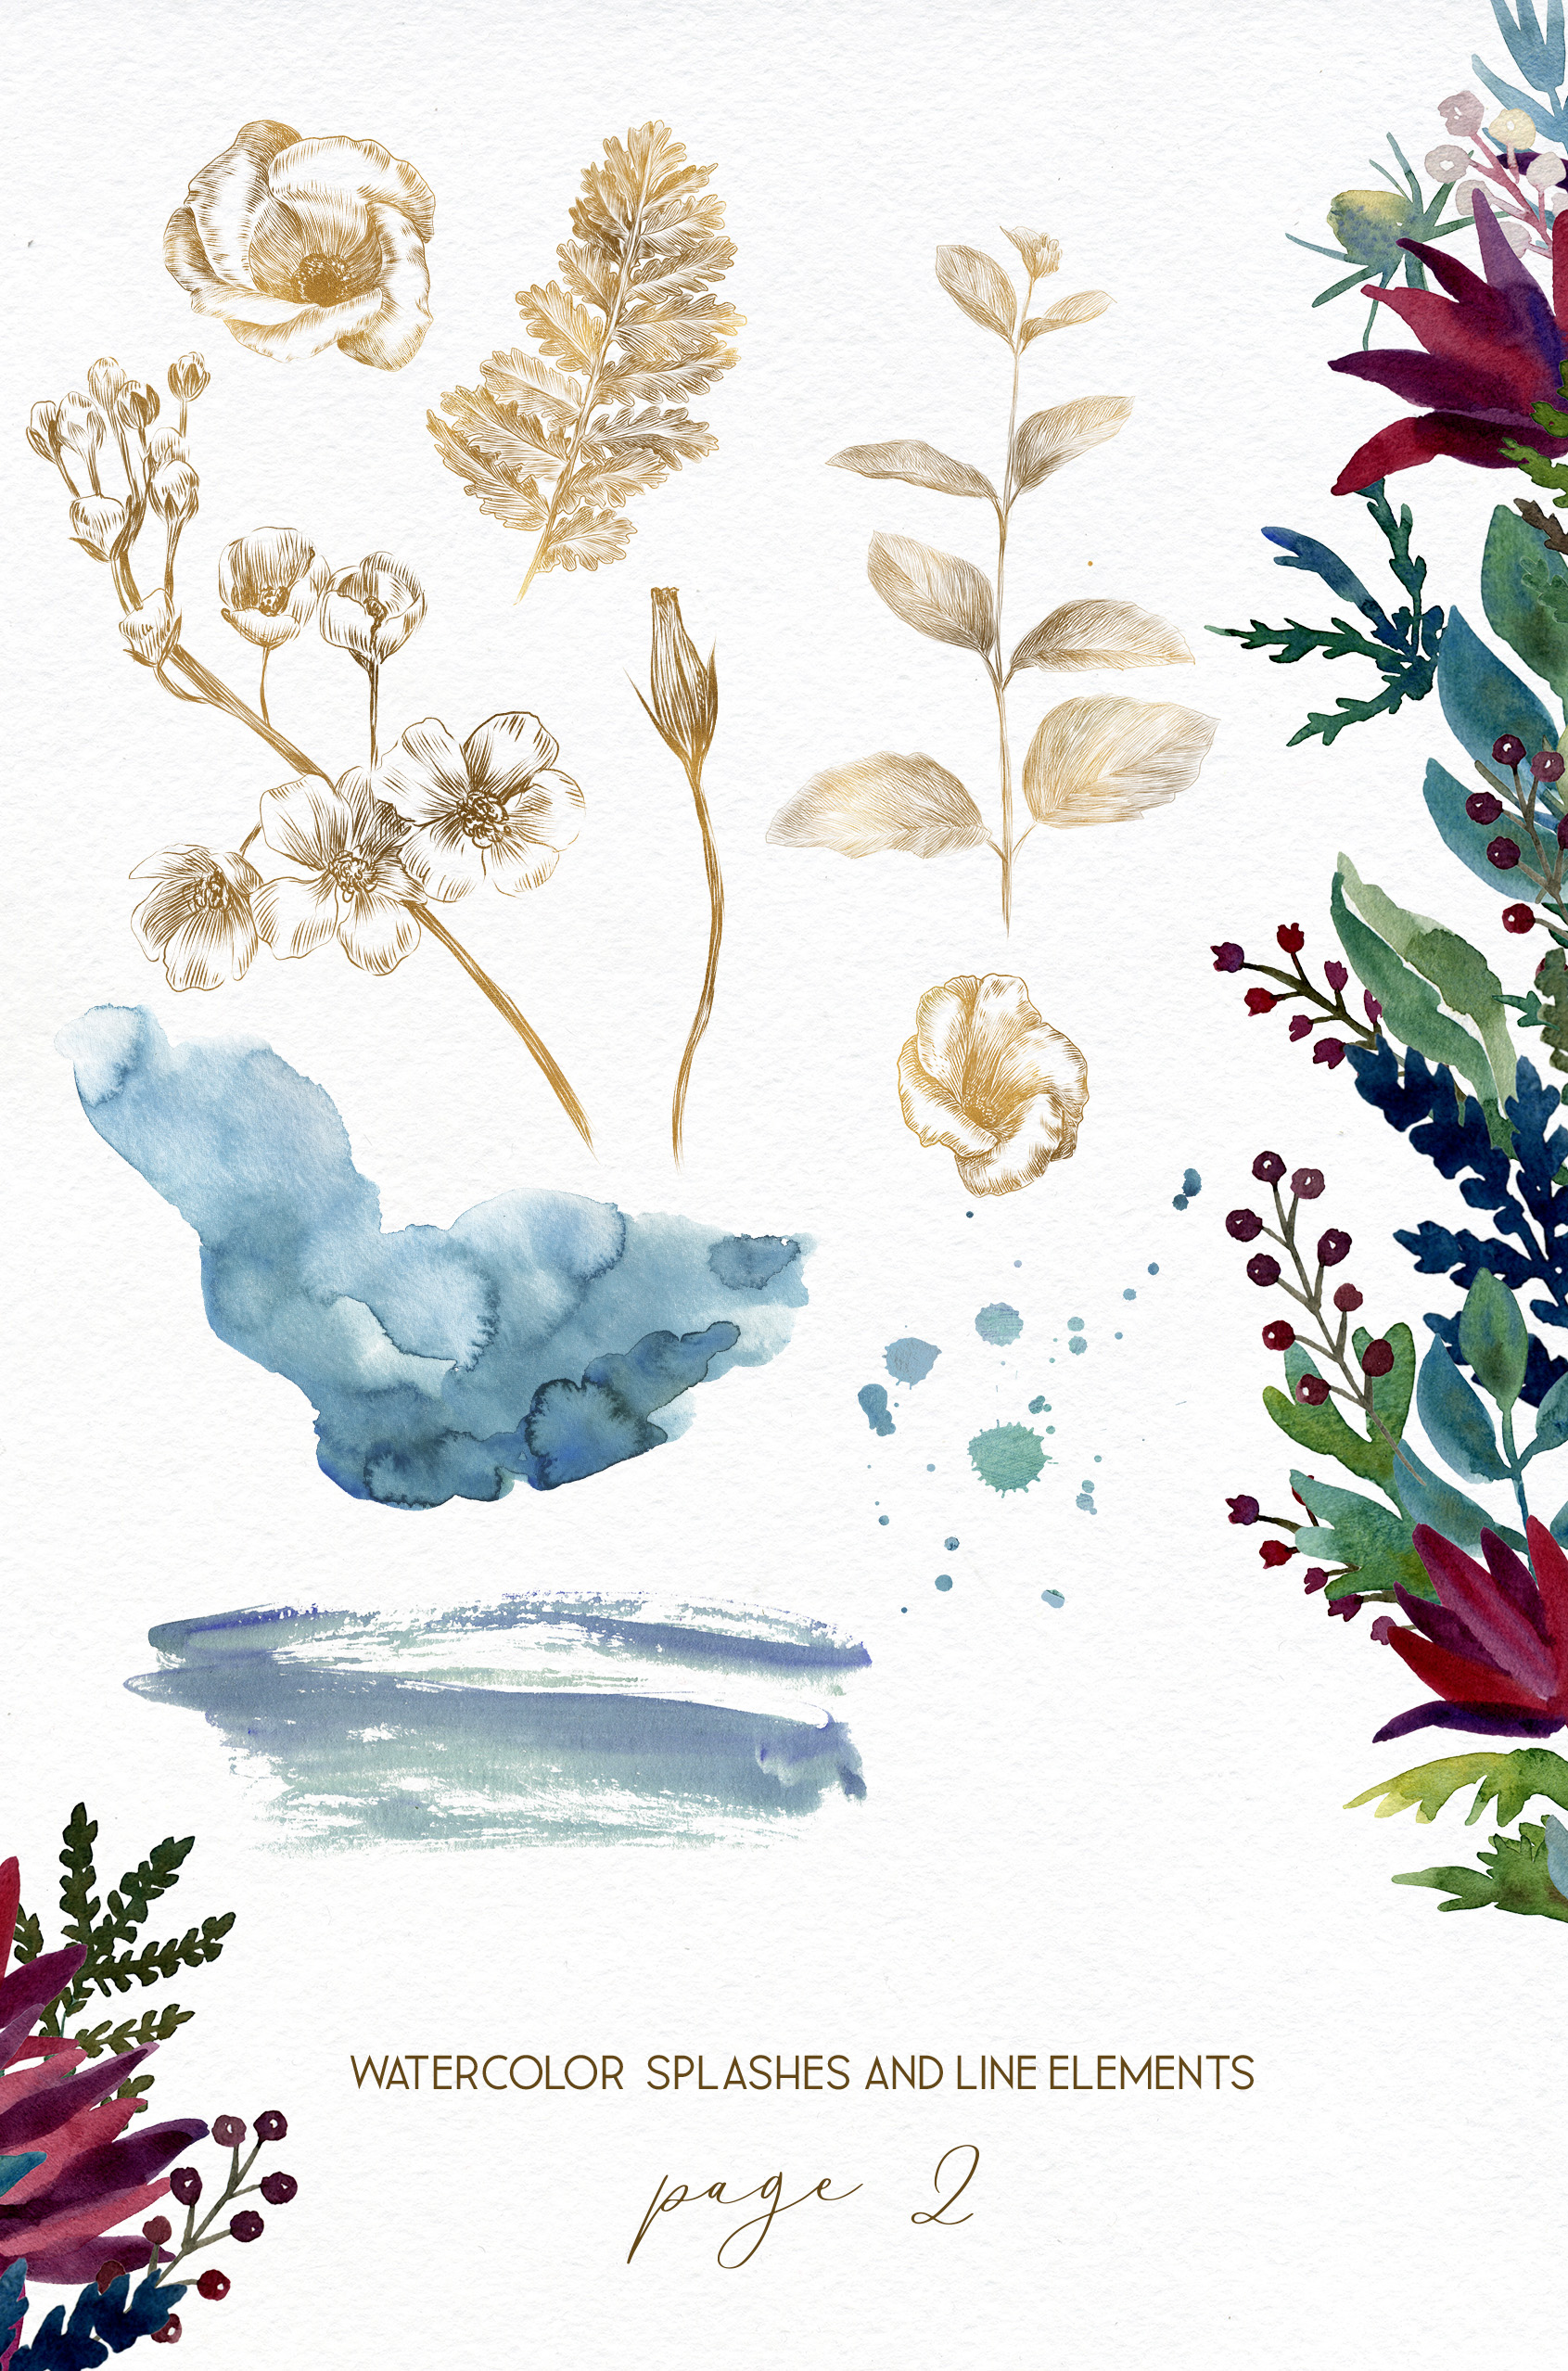 Watercolor anemone wedding floral bouquets, line art flower example image 3